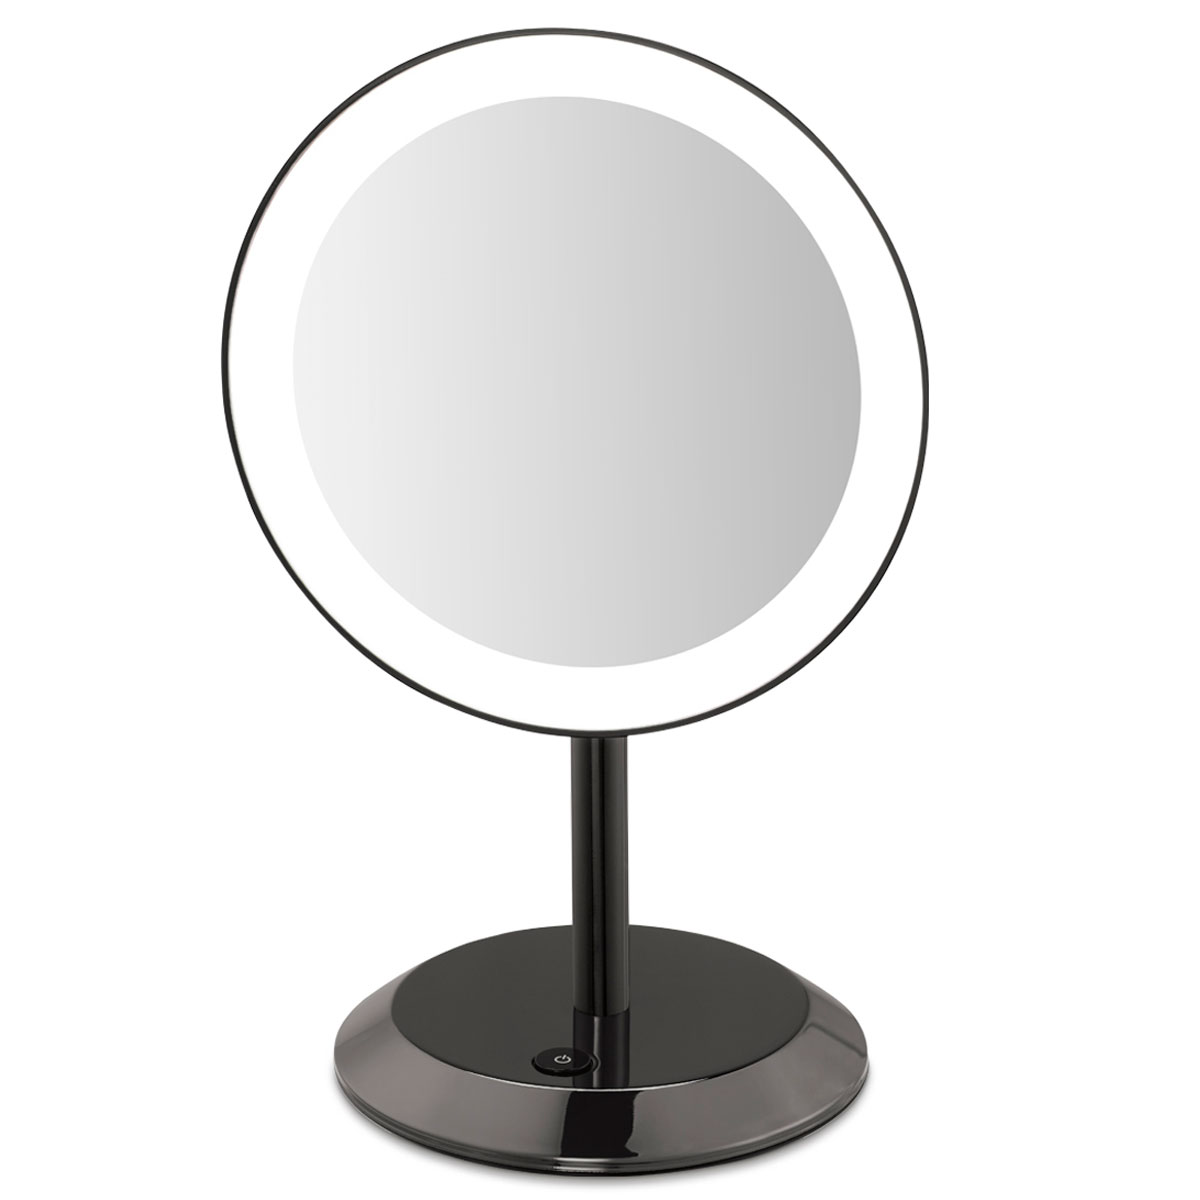 Conair be50lbchw 9 led lighted vanity mirror 5x magnification conair be50lbchw 9 led lighted vanity mirror 5x magnification black chrome 4 per case price per each mozeypictures Gallery